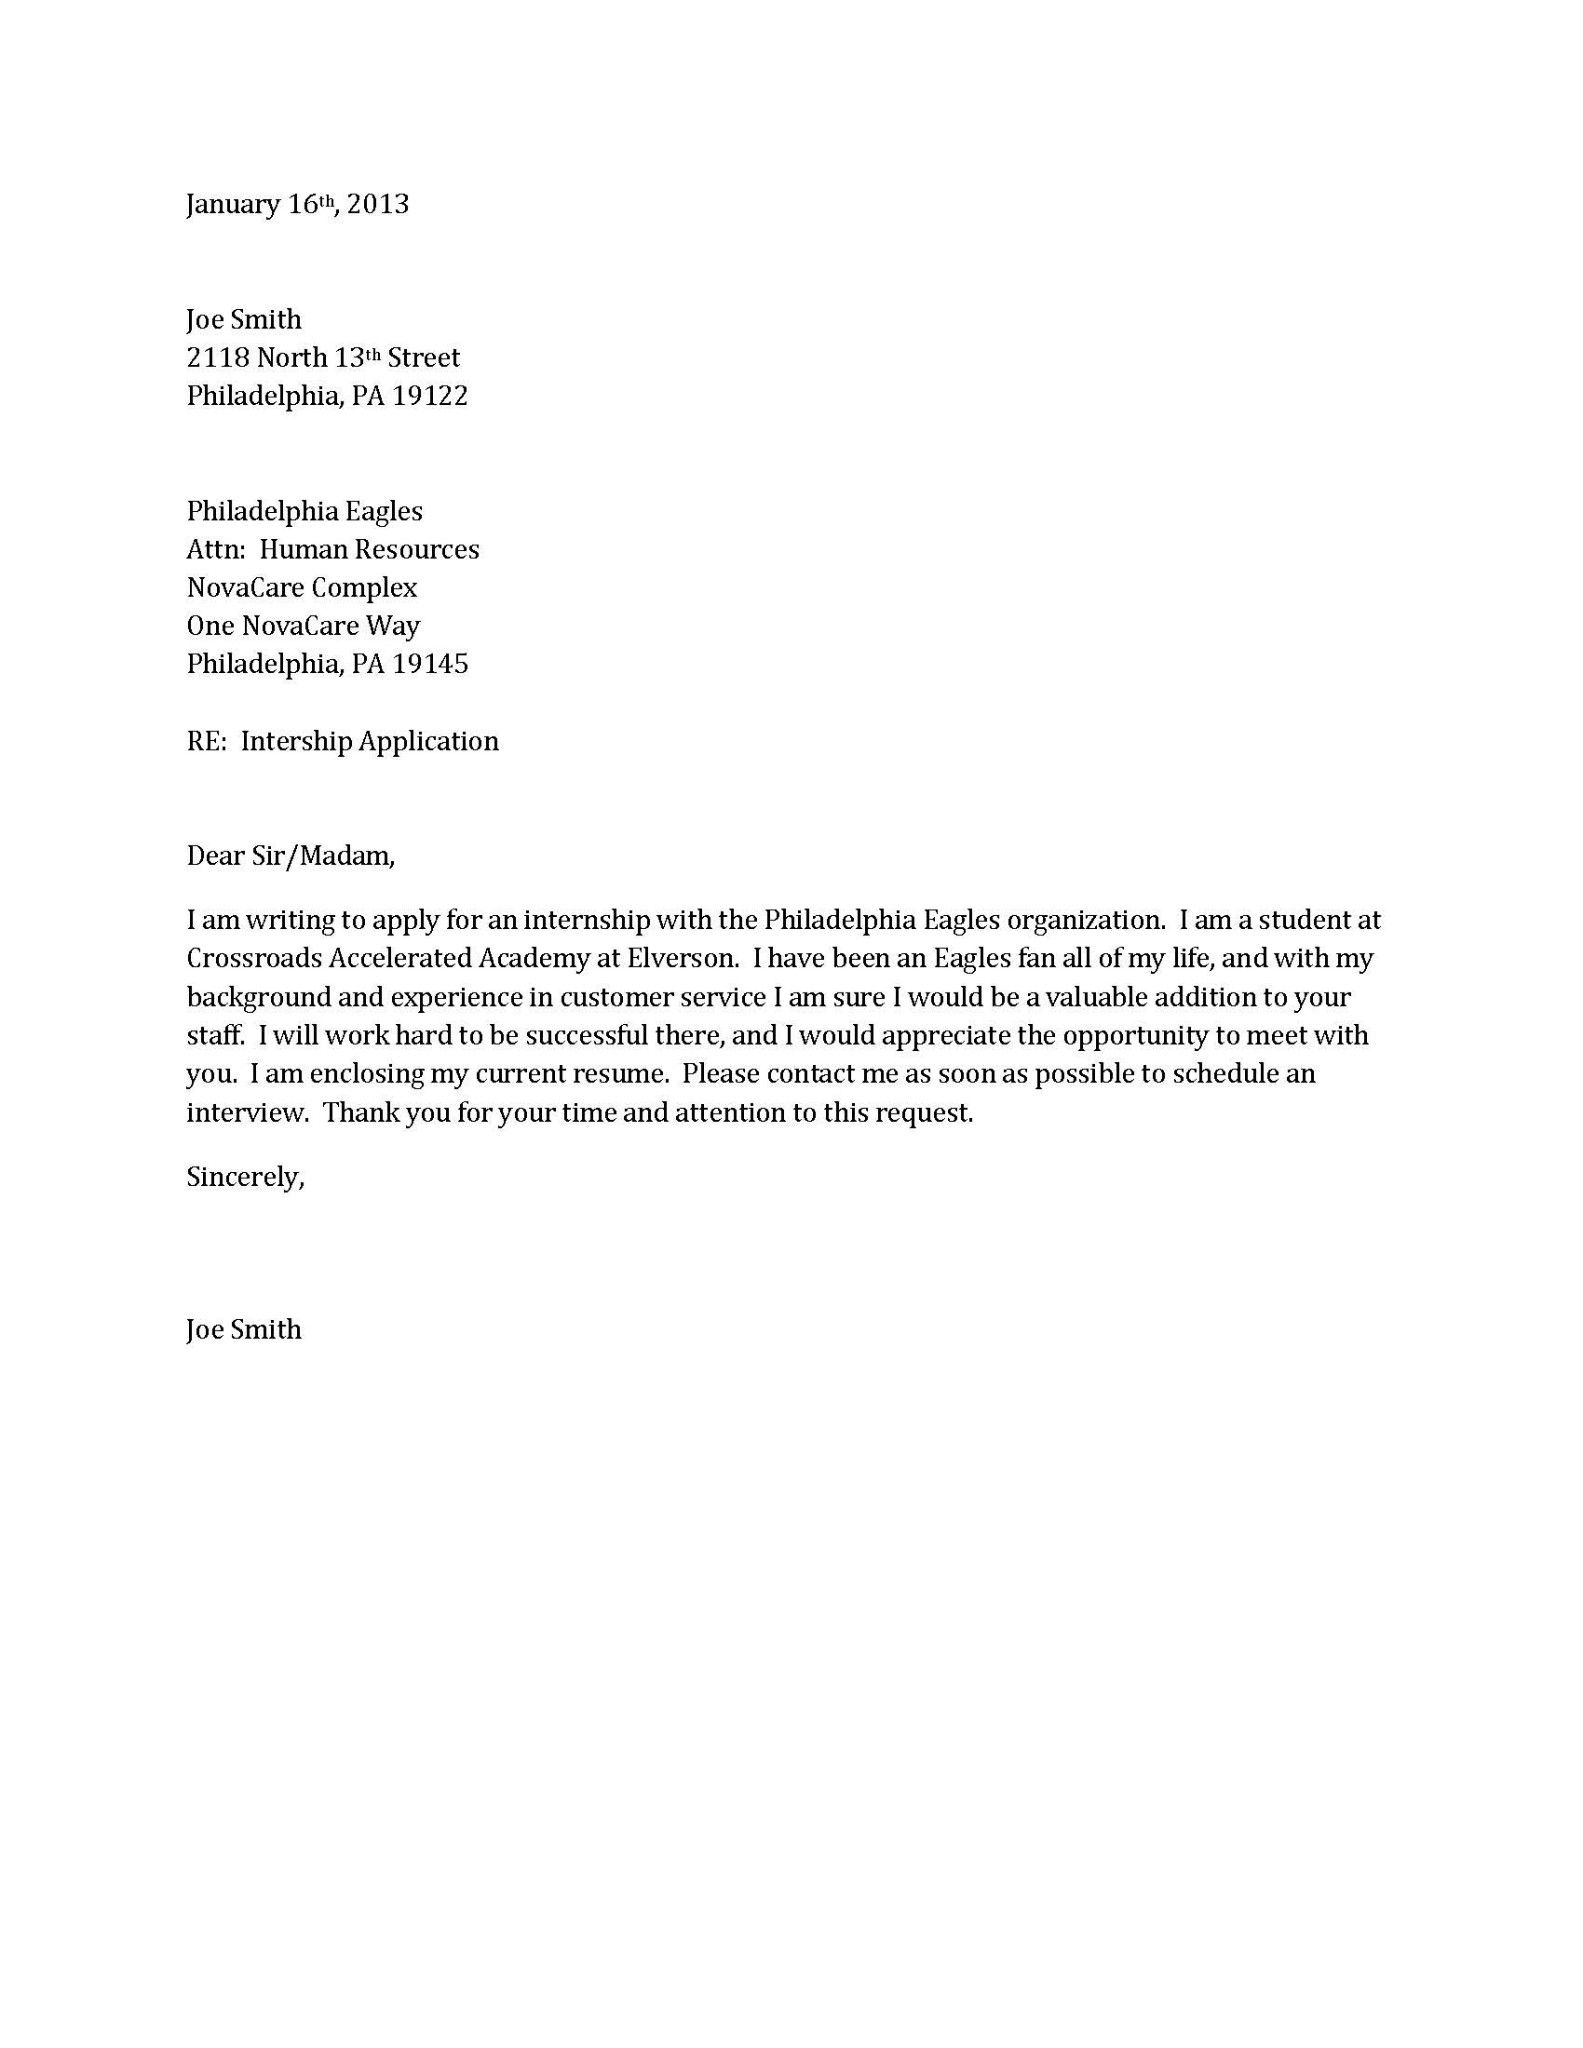 sale cover letter cover letters for s template entry level medical – Sample Cover Letter Example for Sale